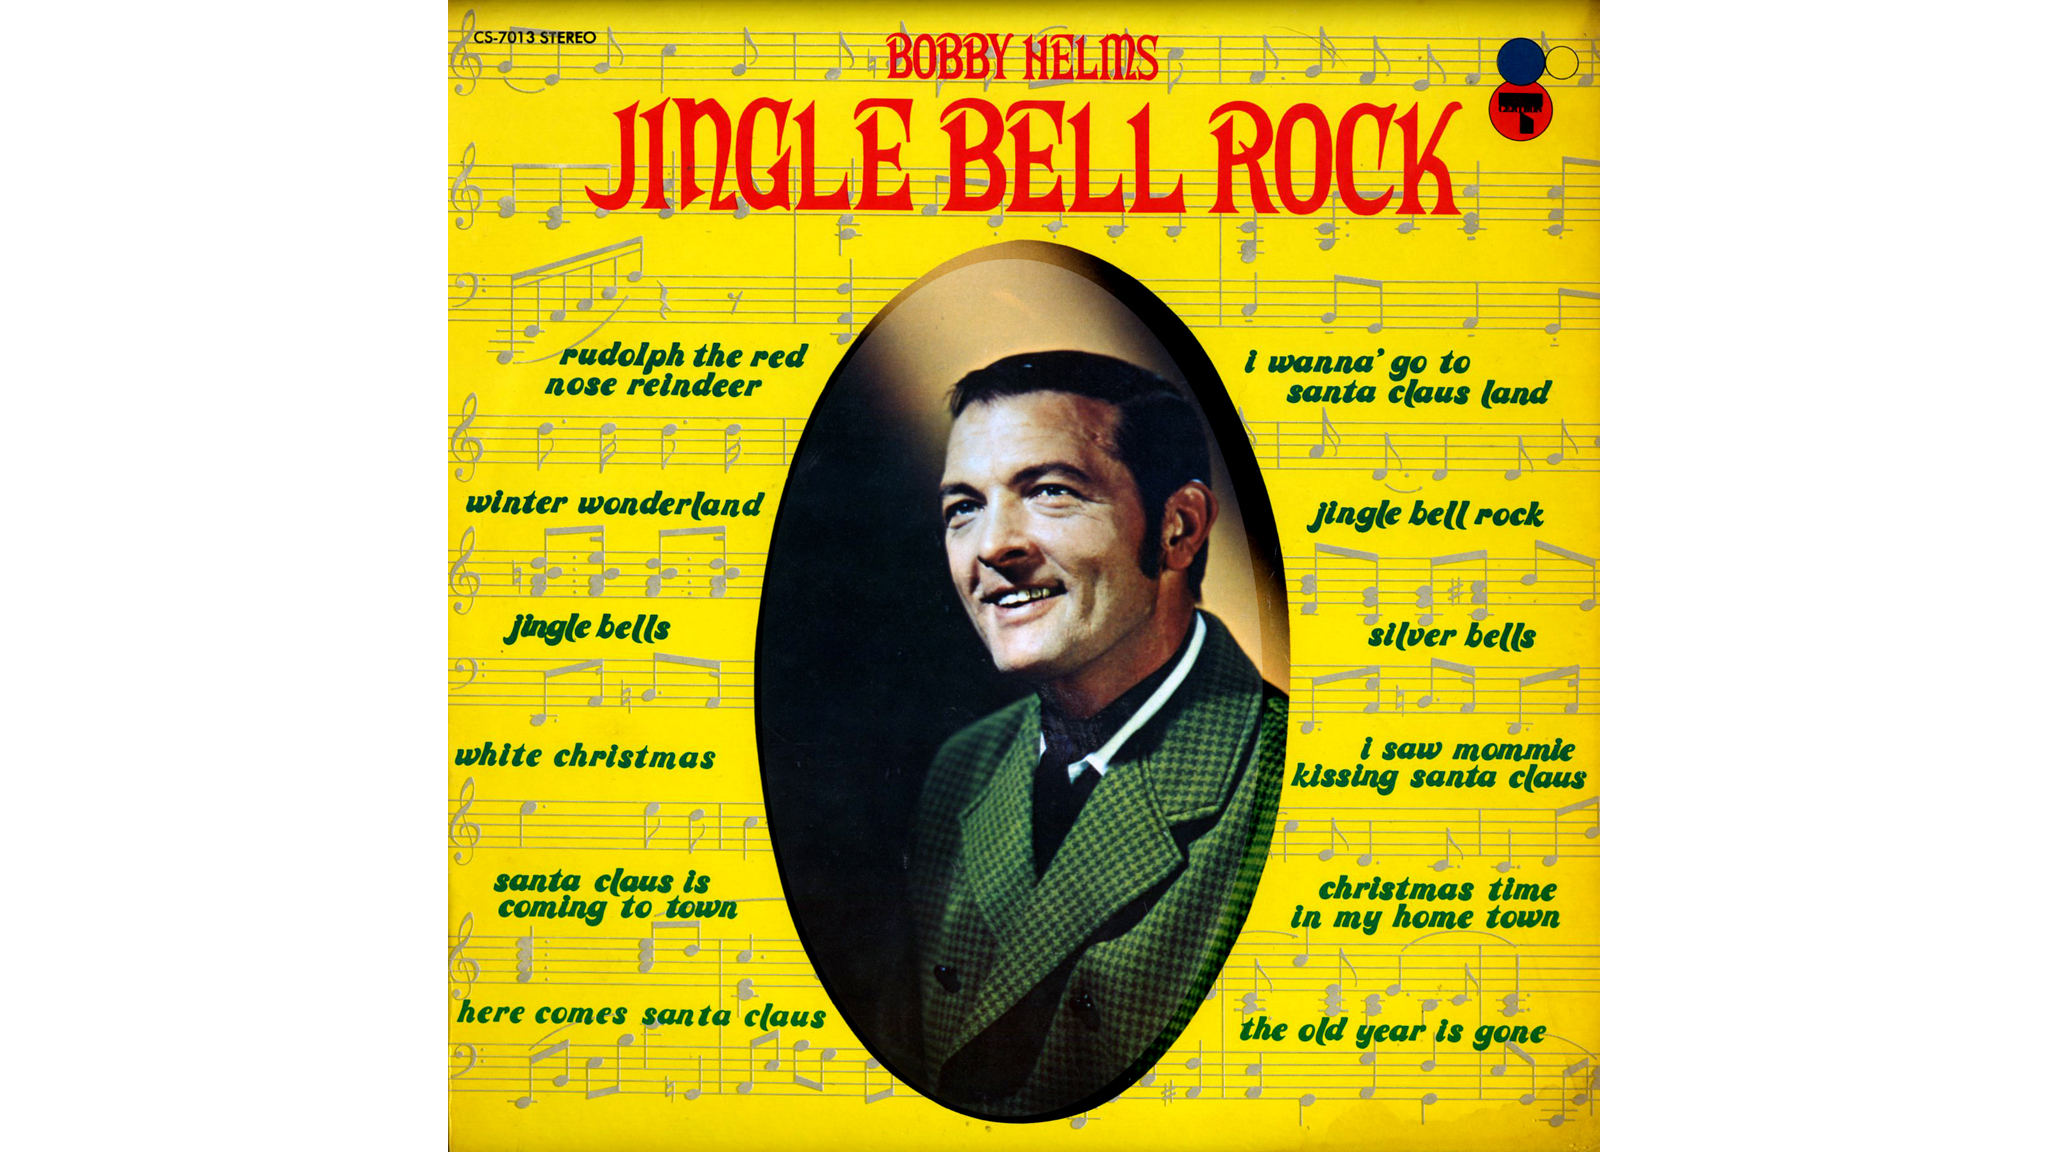 'Jingle Bell Rock' – Bobby Helms